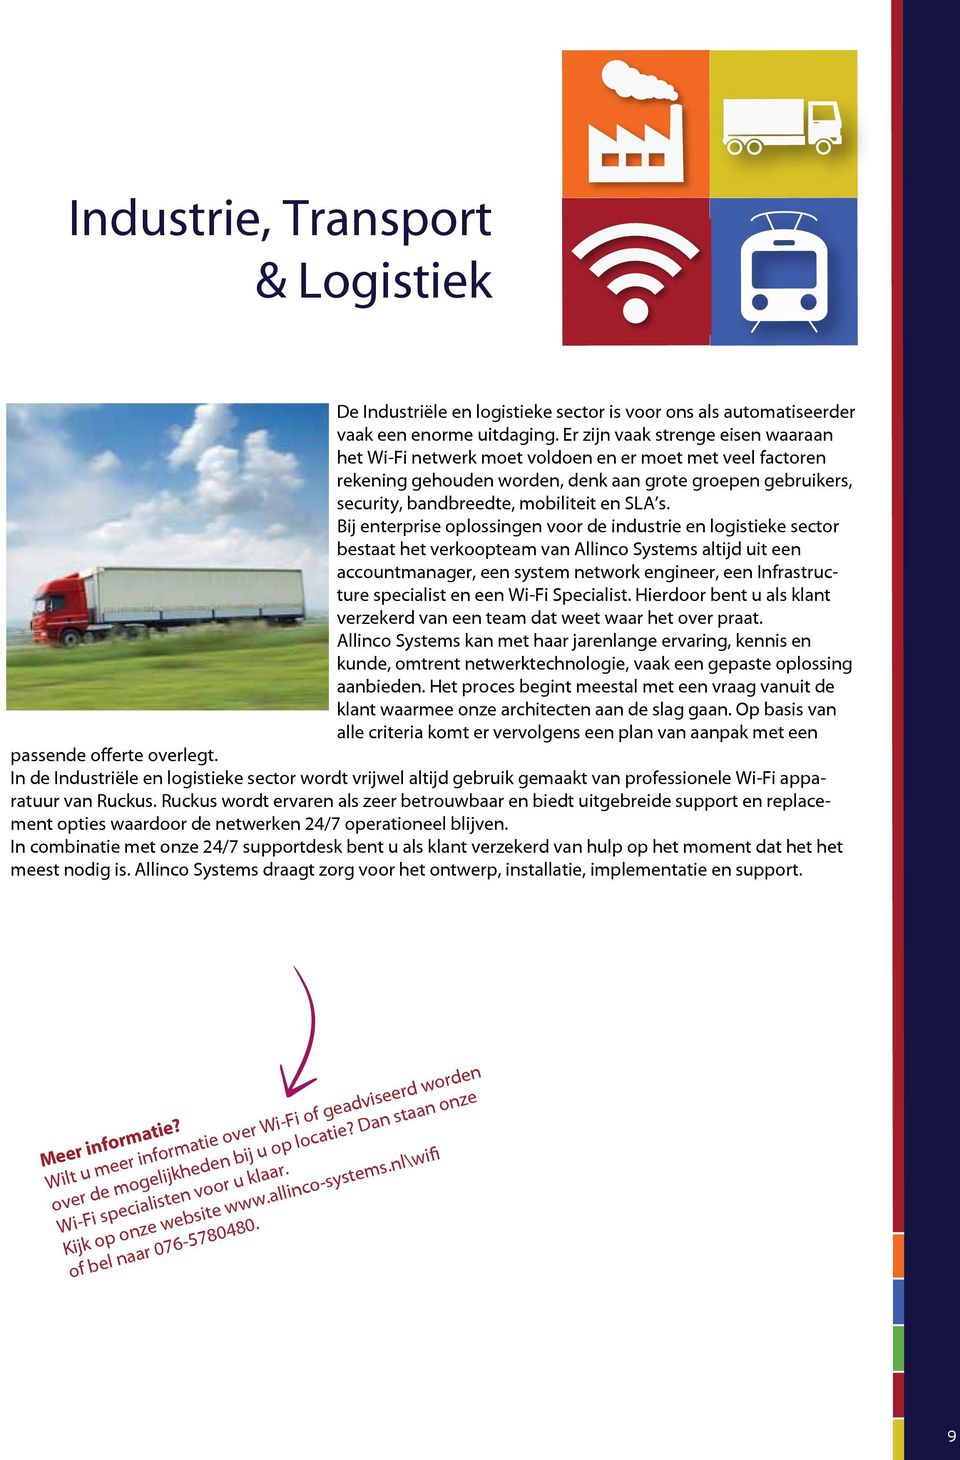 Bij enterprise oplossingen voor de industrie en logistieke sector bestaat het verkoopteam van Allinco Systems altijd uit een accountmanager, een system network engineer, een Infrastructure specialist